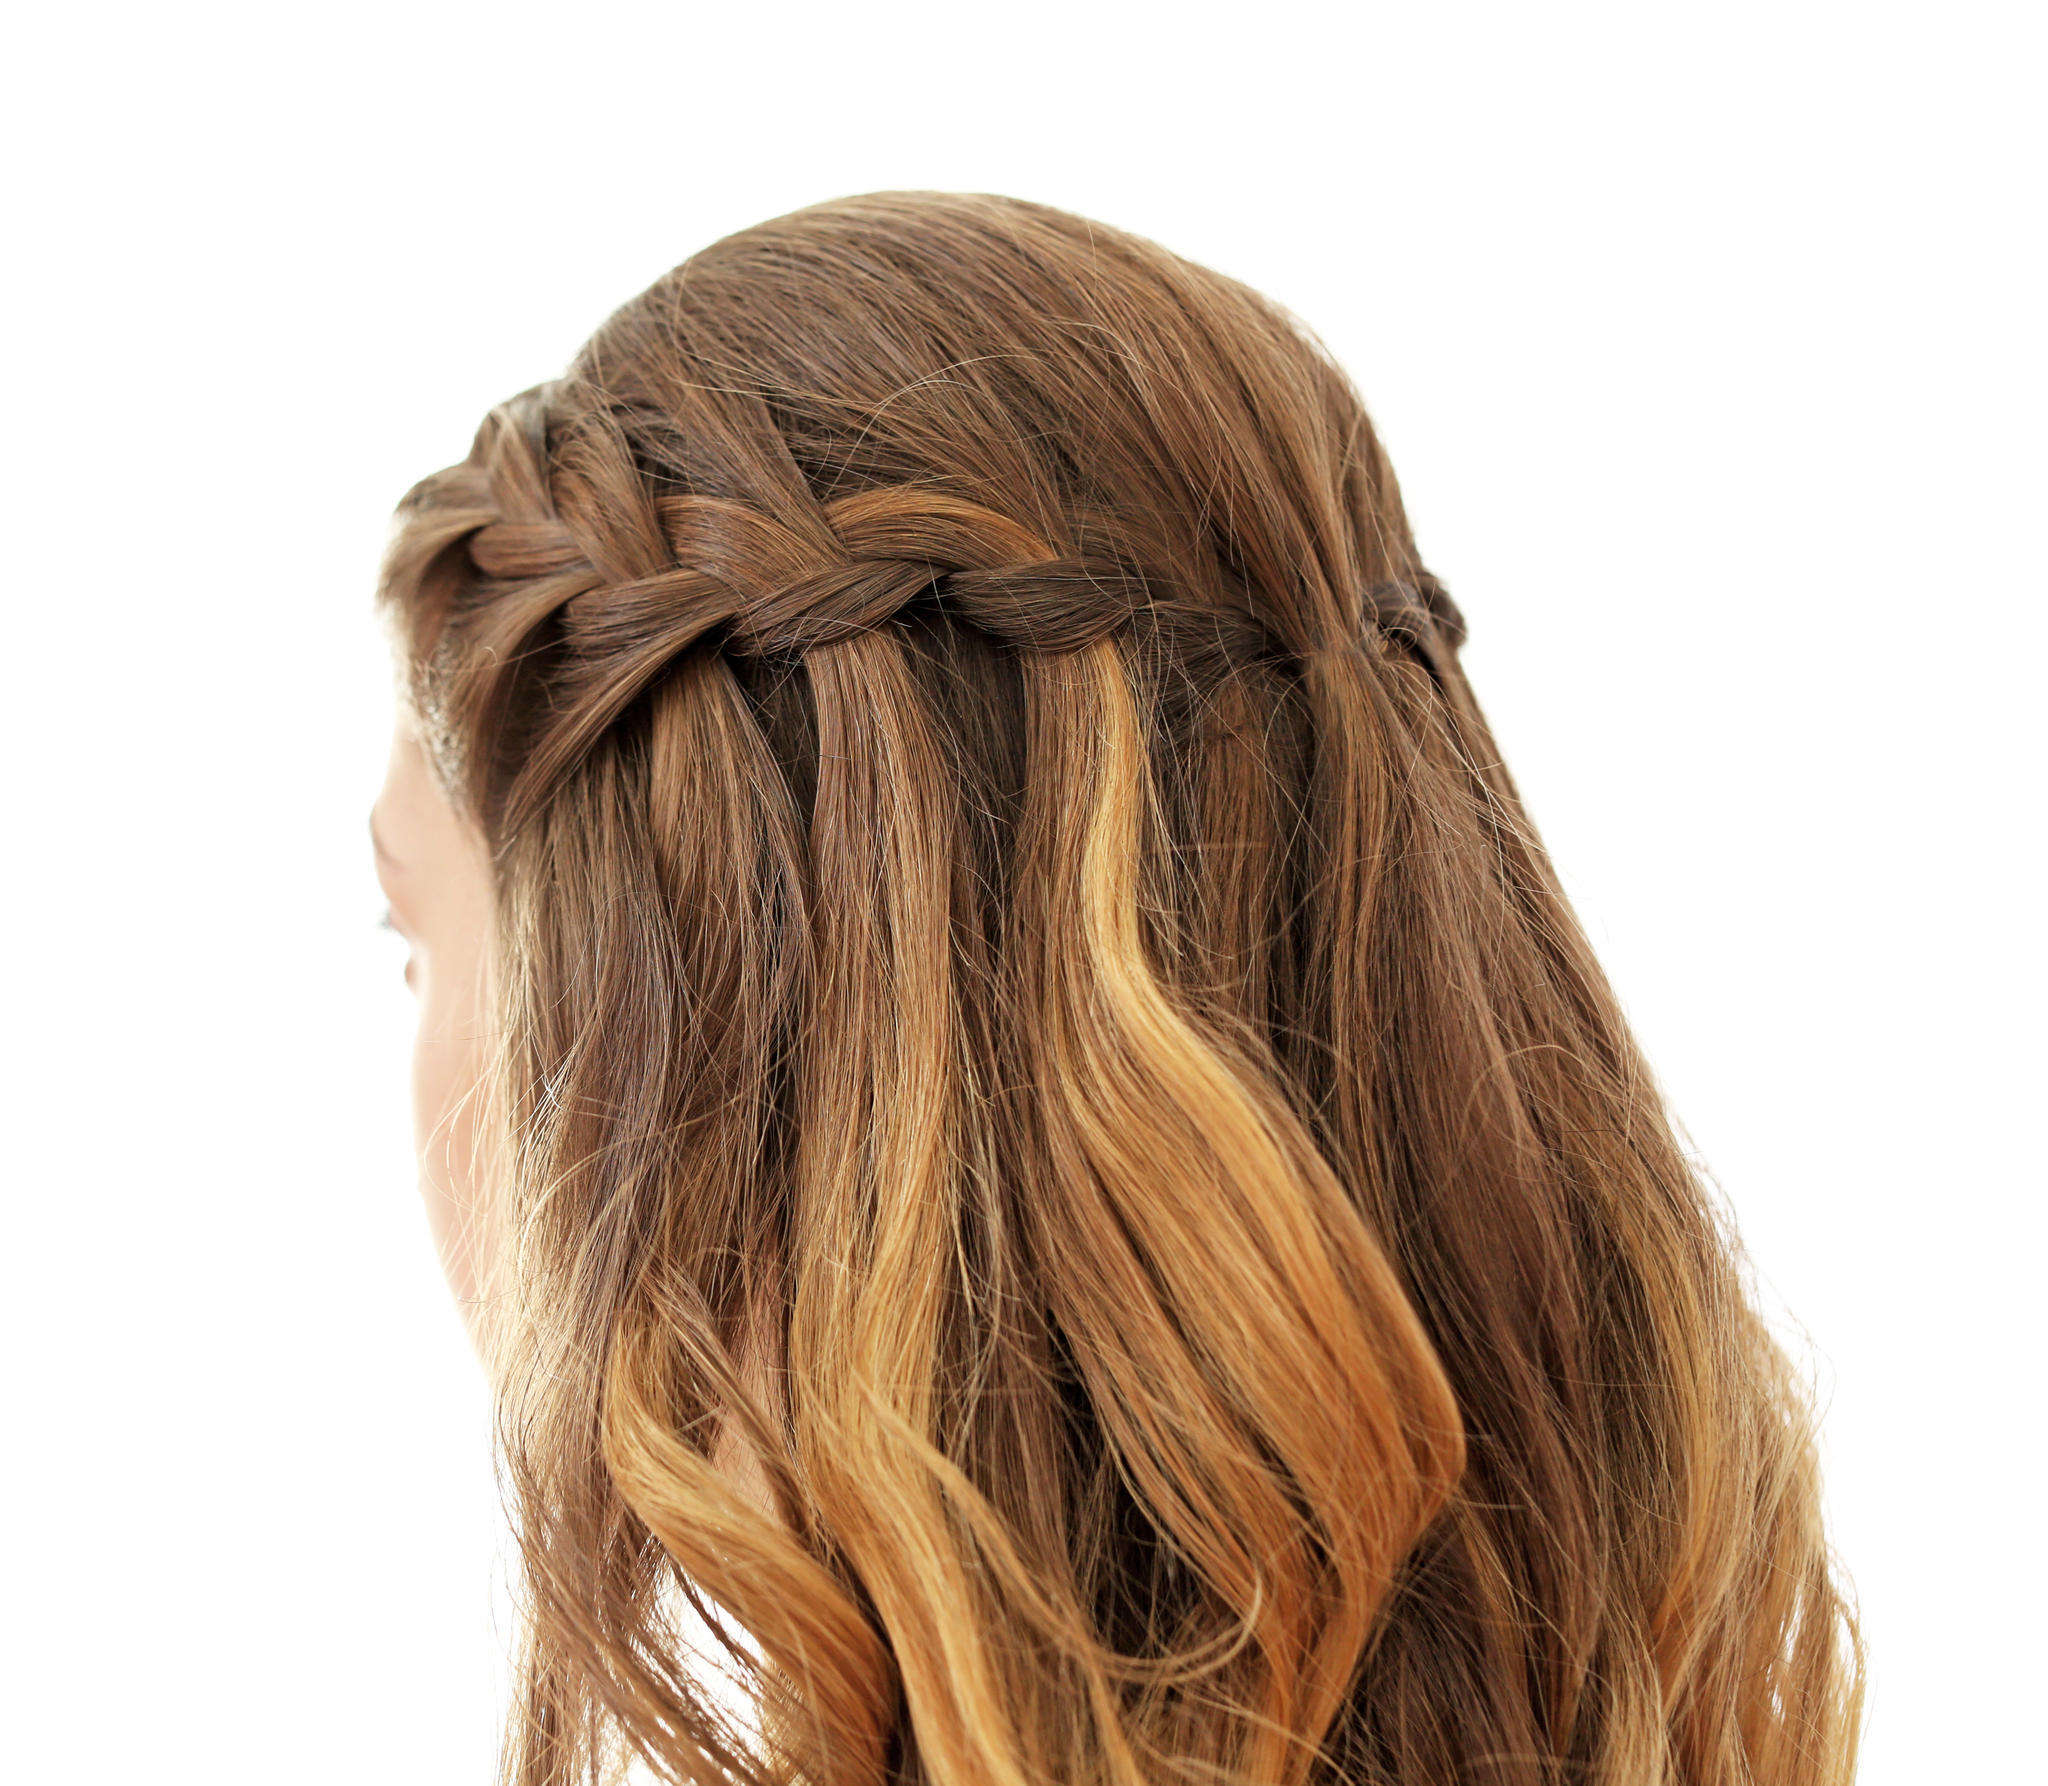 Flechtfrisuren - so geht der der Waterfall Braid (Wasserfallzopf)